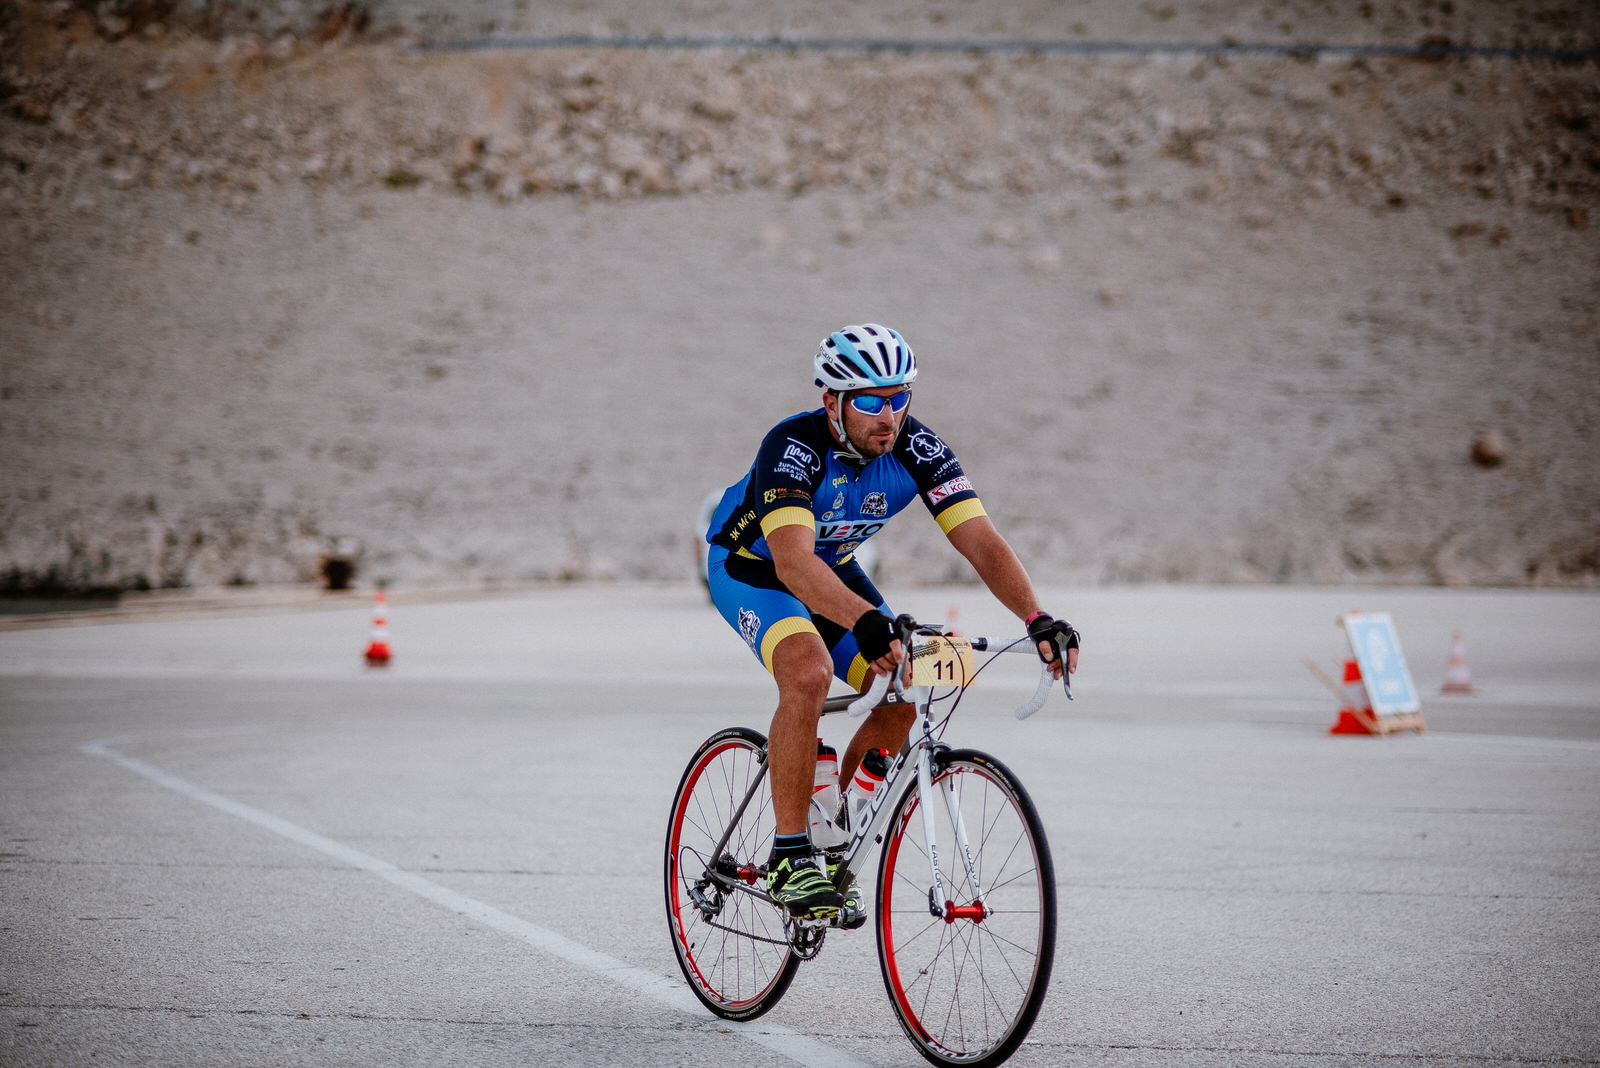 likaclub_Granfondo-Pag-–-Cycling-on-the-Moon_2019-35